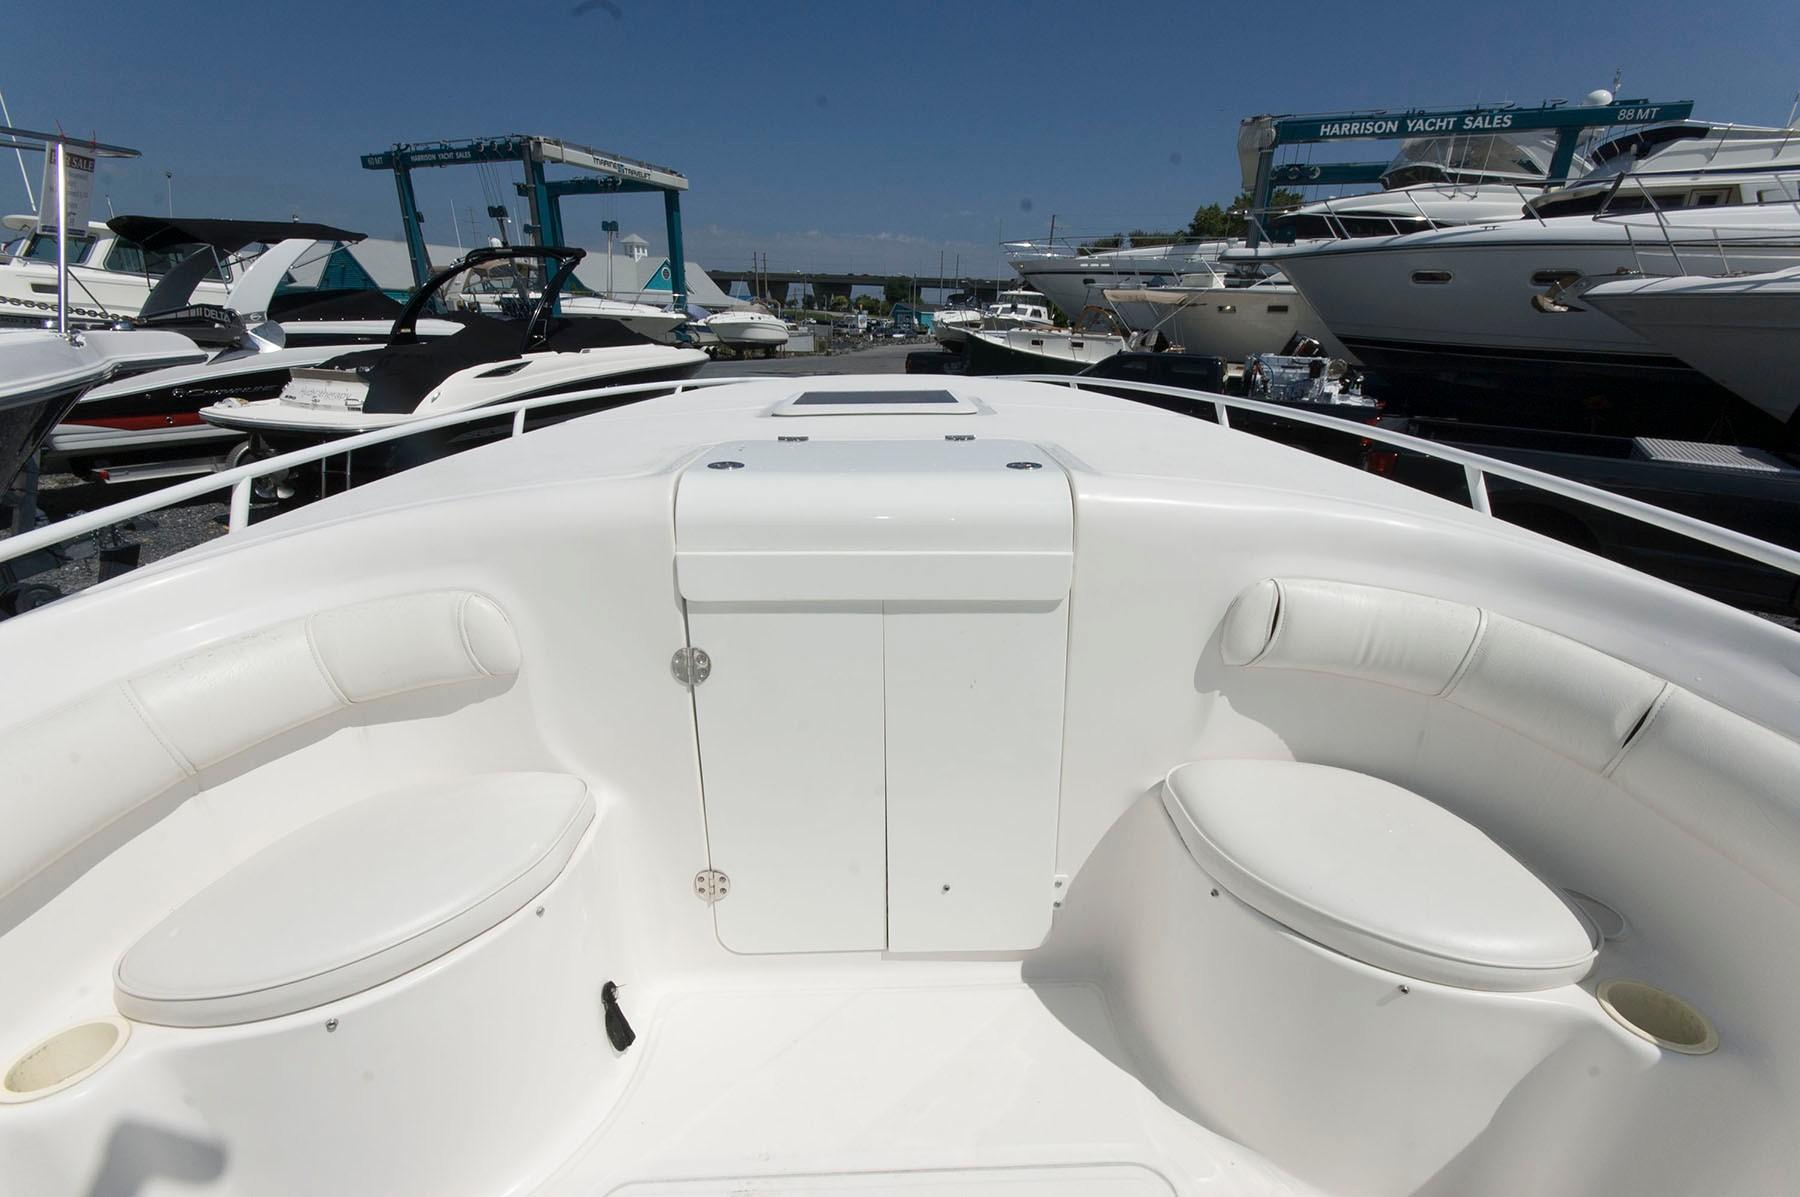 M 4950 EF Knot 10 Yacht Sales